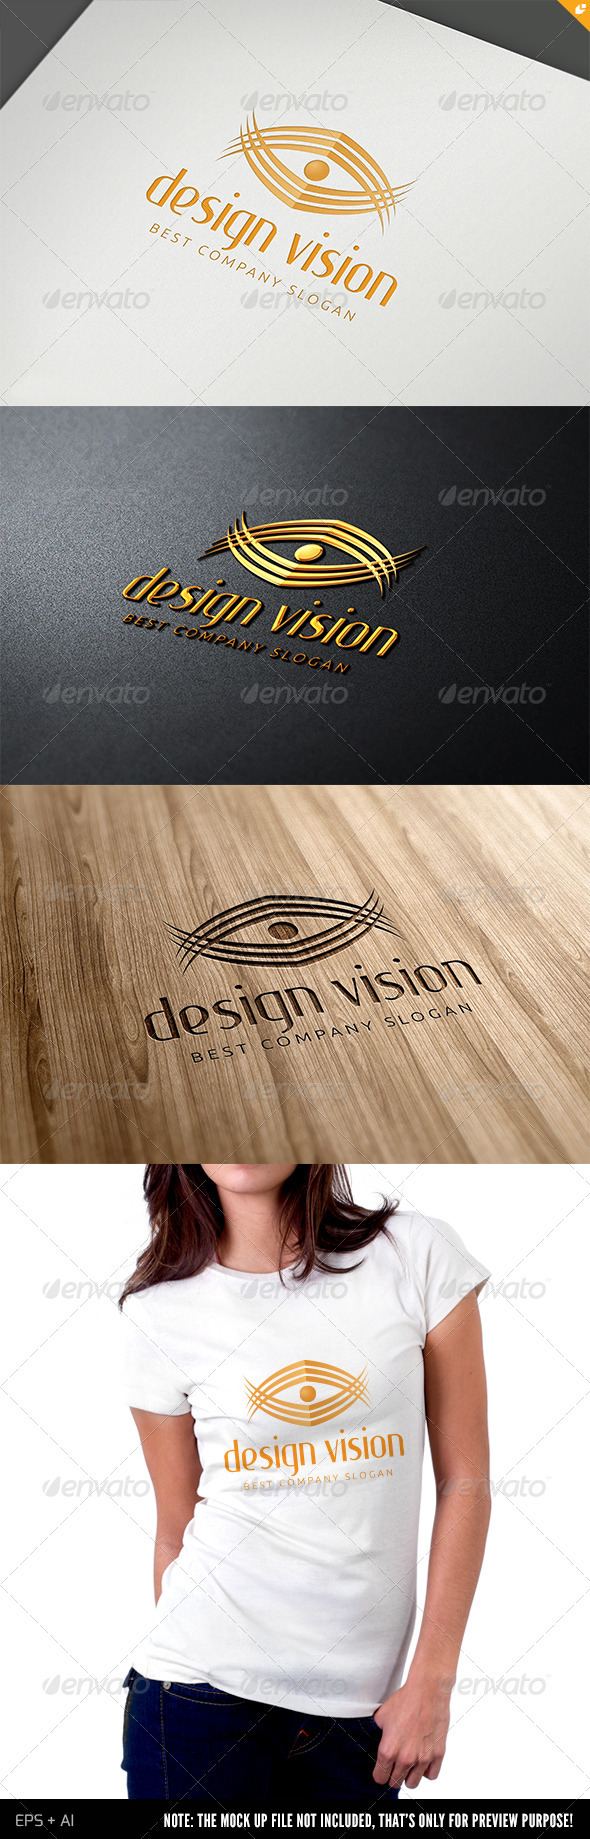 Media Design Vision Logo - Humans Logo Templates